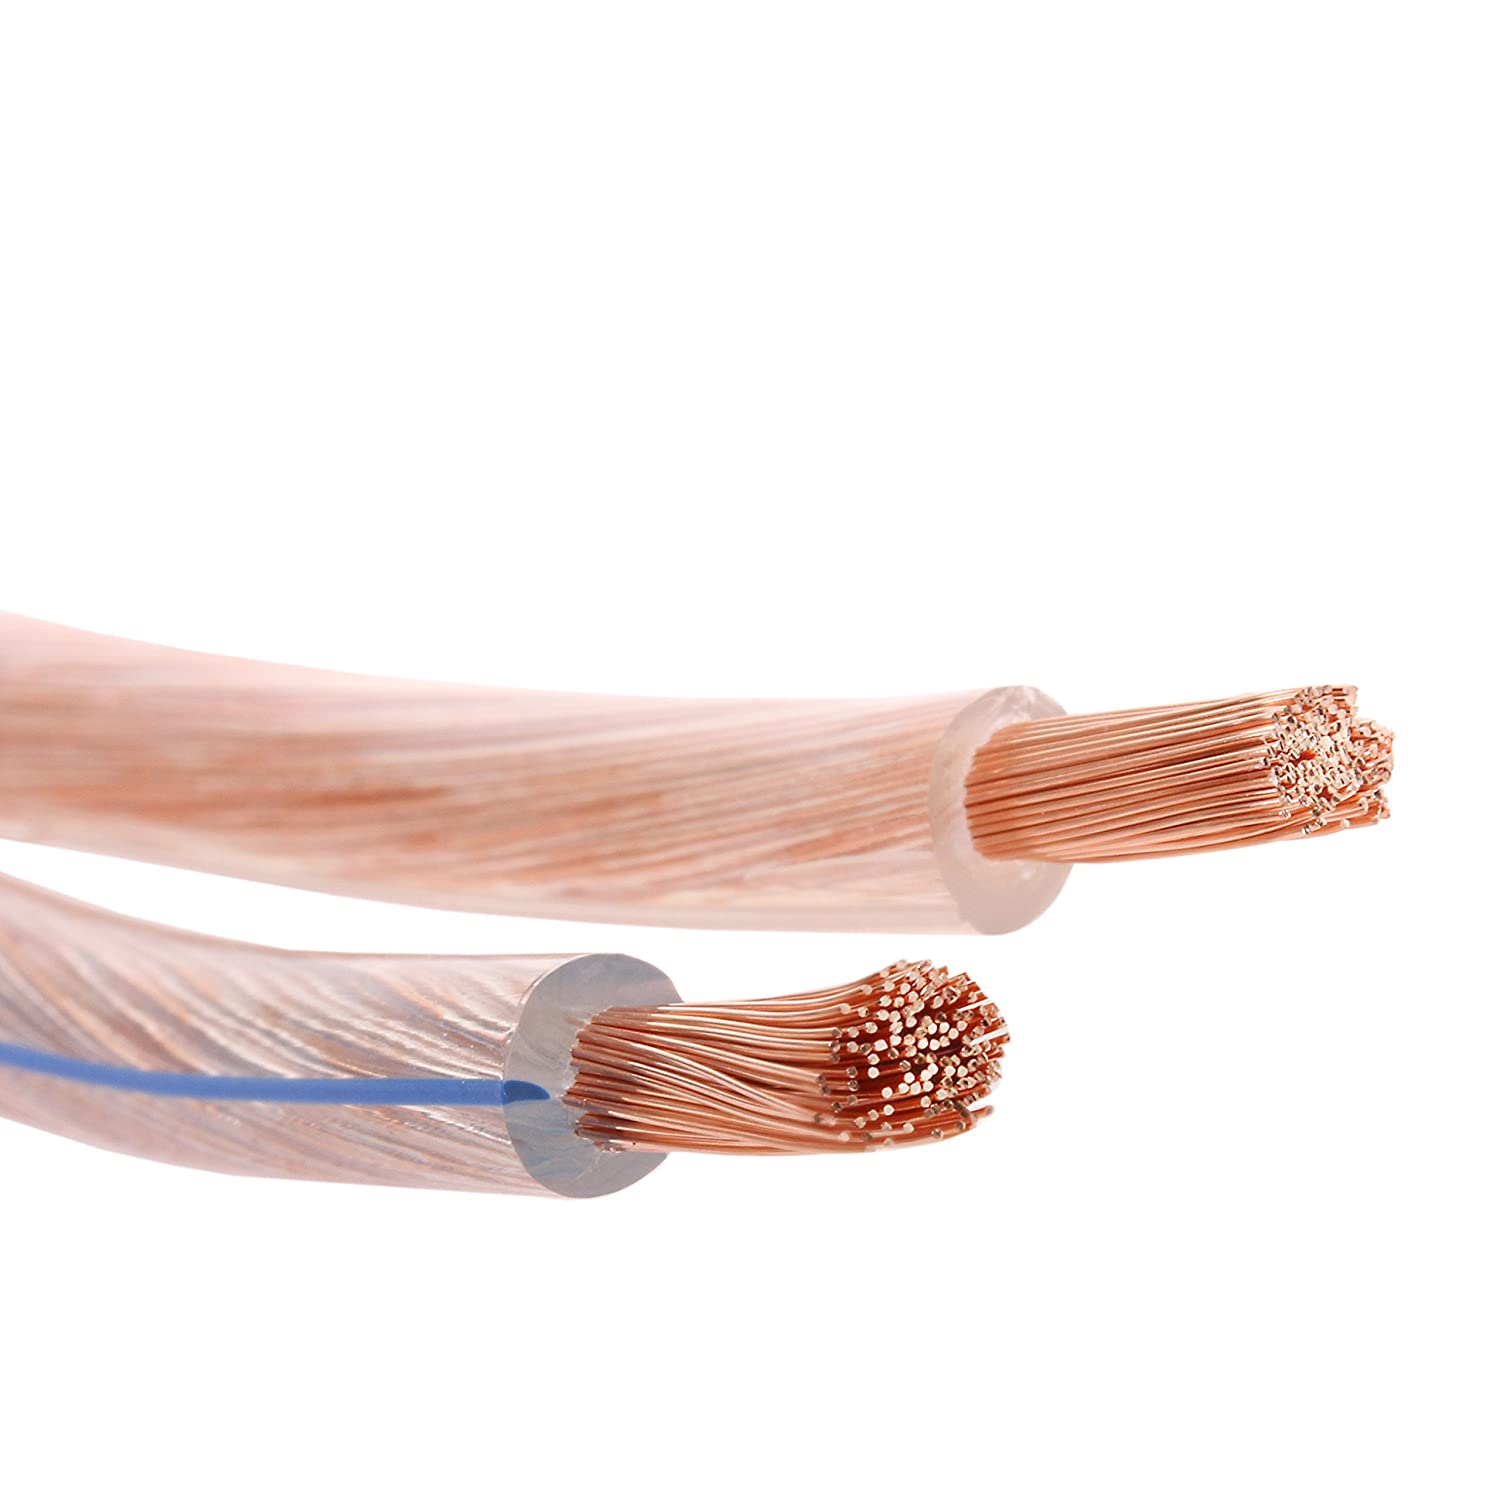 cable de cobre 99,99 /% OFC cord/ón: 2 x 132 x 0,2 mm Misterhifi Cable para altavoces de 20 m 2 x 4,0 mm/² cable para bafles // cable para audio para altavoces y home cinema Made in Germany aislamiento transparente